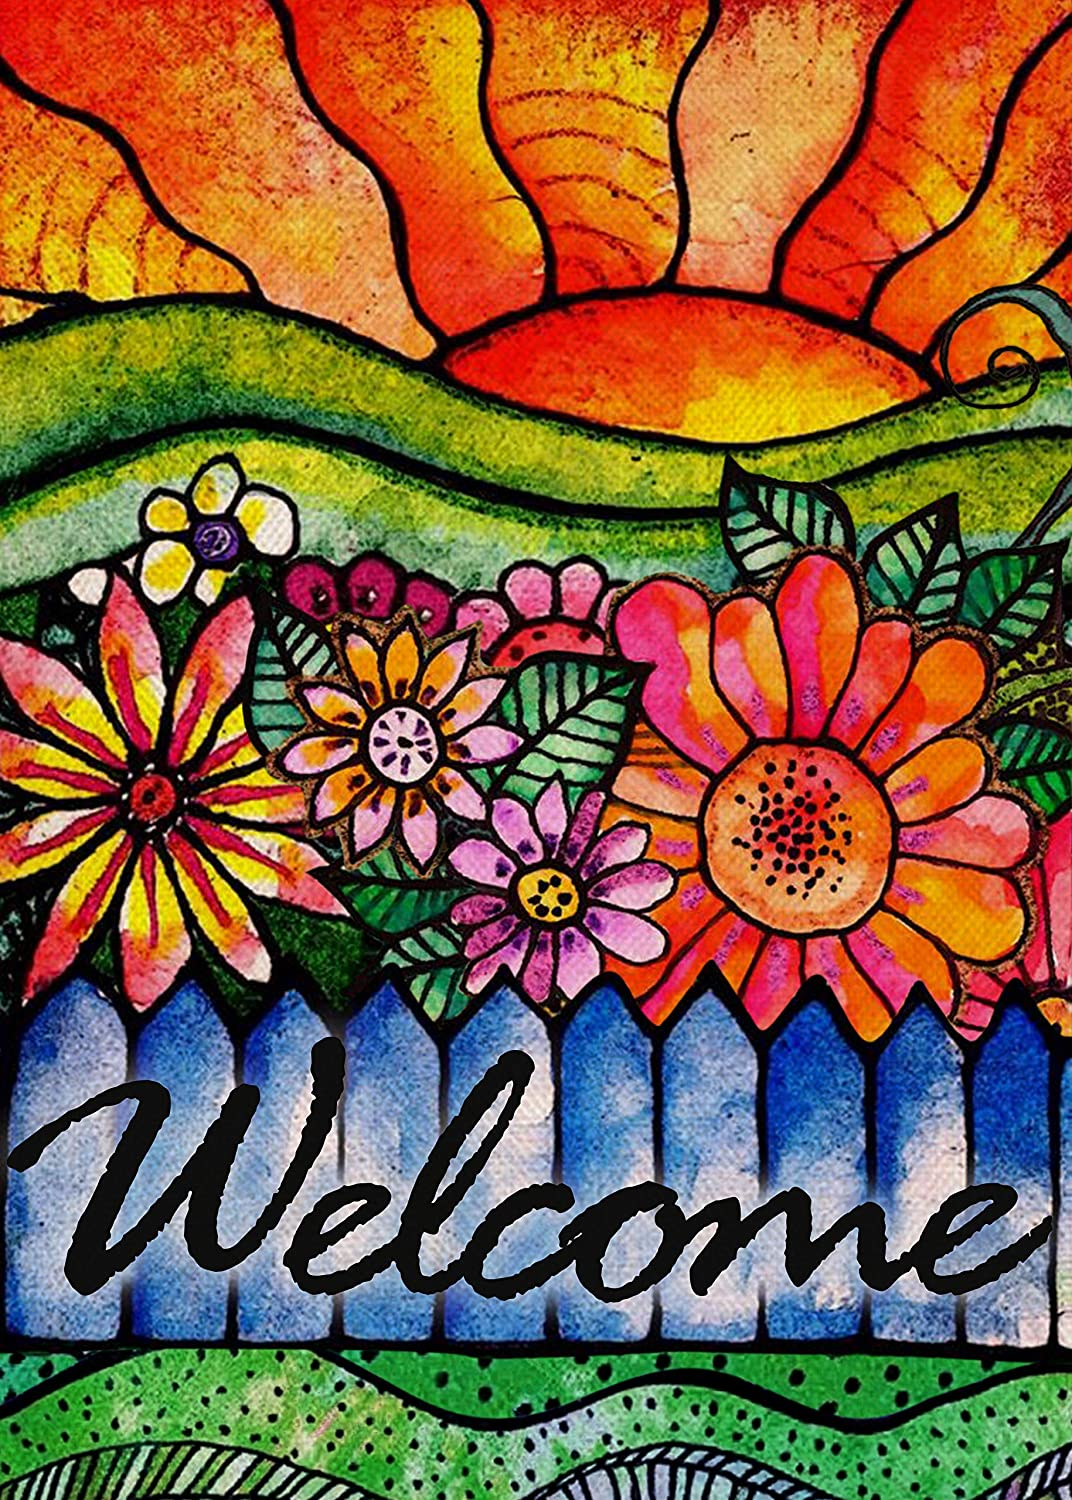 Covido Home Decorative Welcome Spring Summer Garden Flag, Vintage Watercolor Flowers House Yard Lawn Decor Farmhouse Outside Decorations, Seasonal Outdoor Small Burlap Flag Double Sided 12 x 18